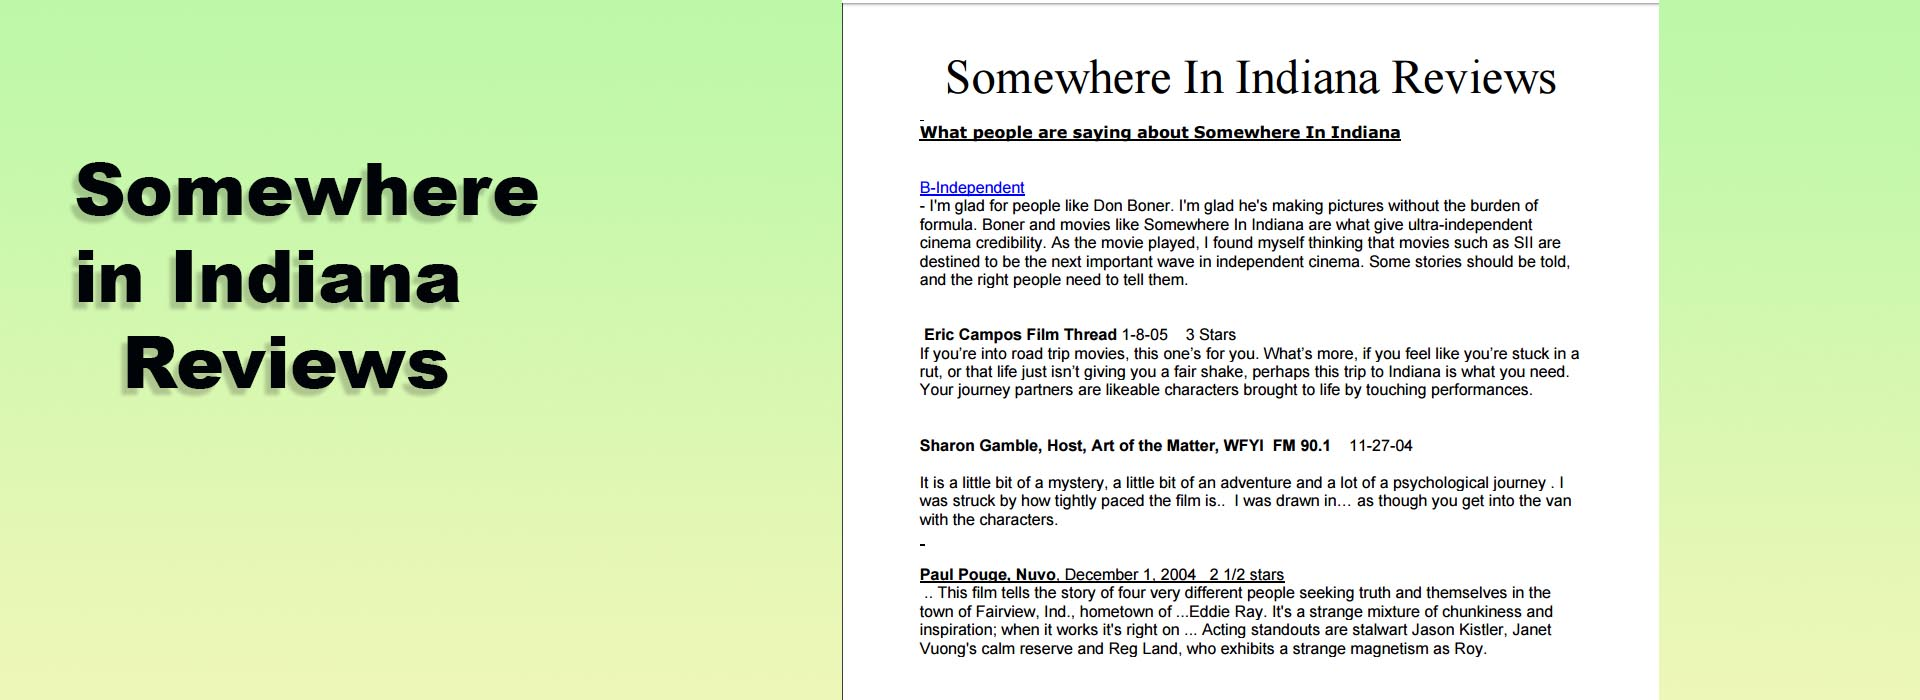 Somewhere in Indiana Reviews